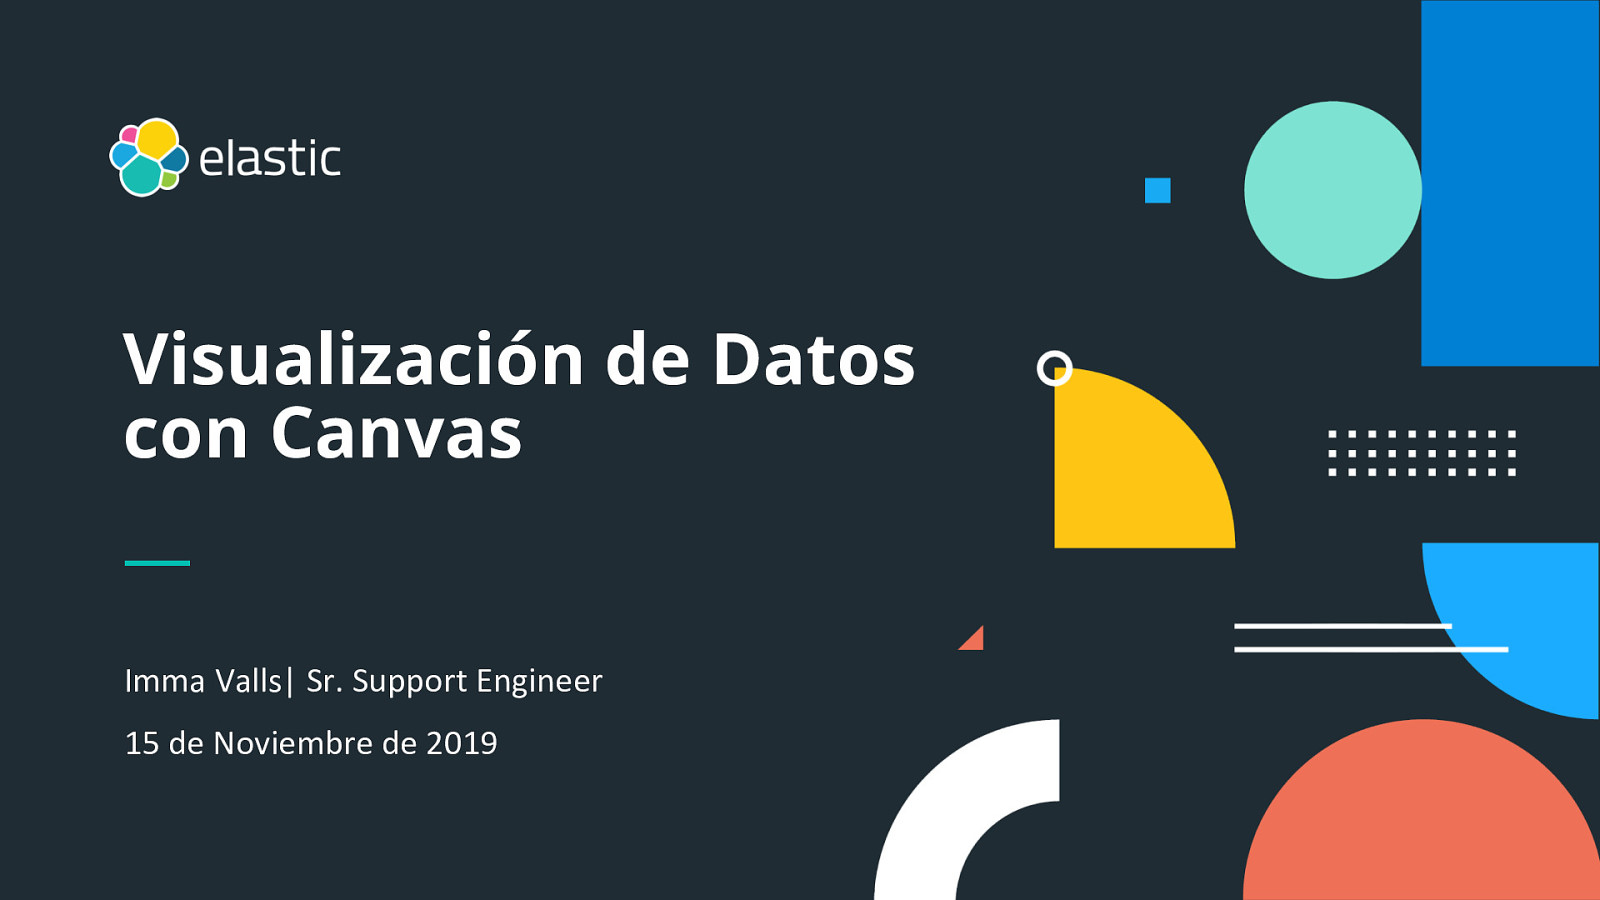 Visualización de Datos con Canvas